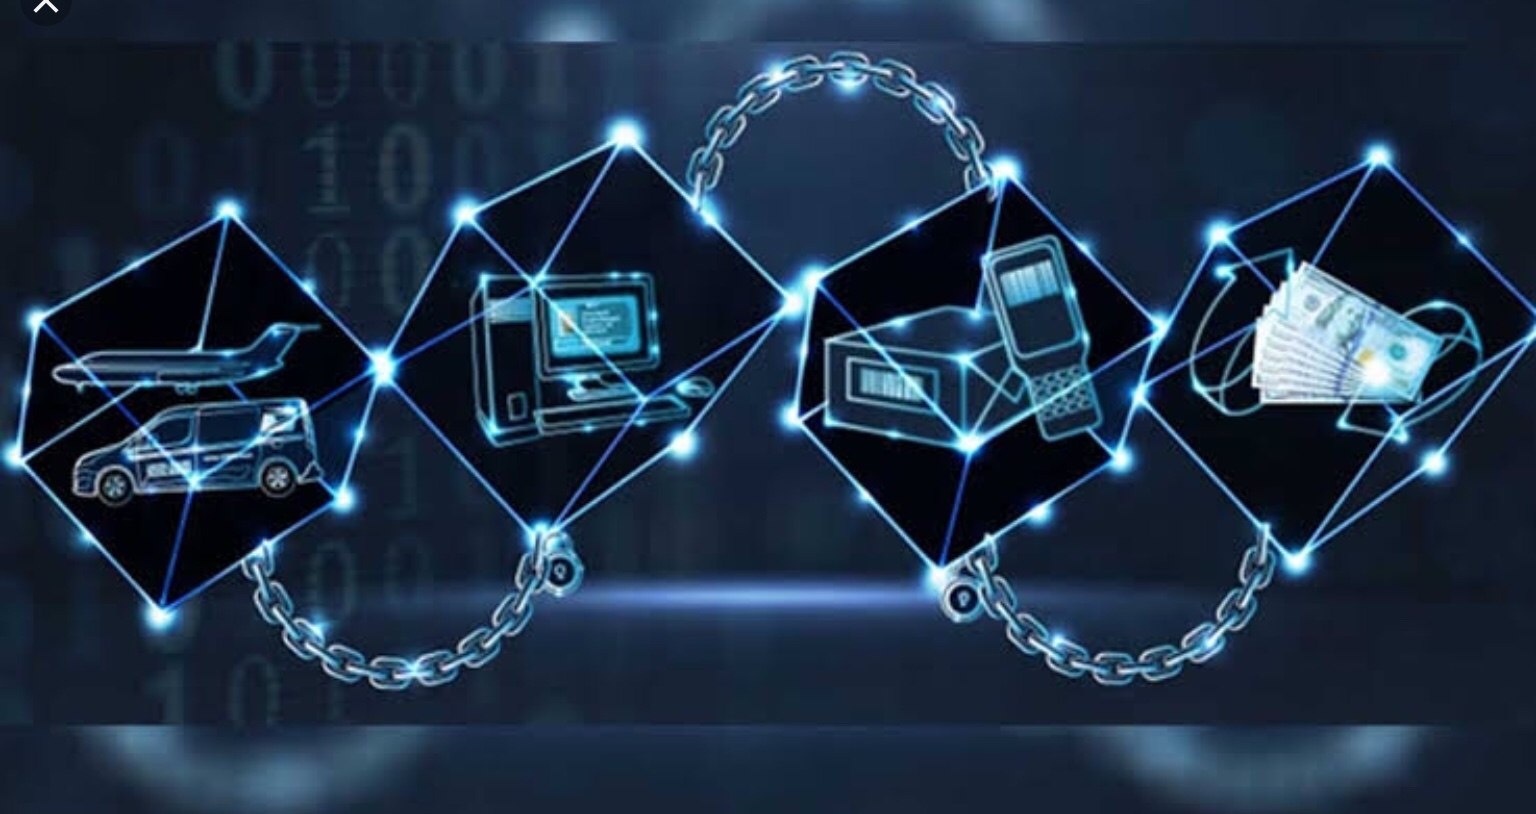 News info update on #cybersecurity and #blockchain